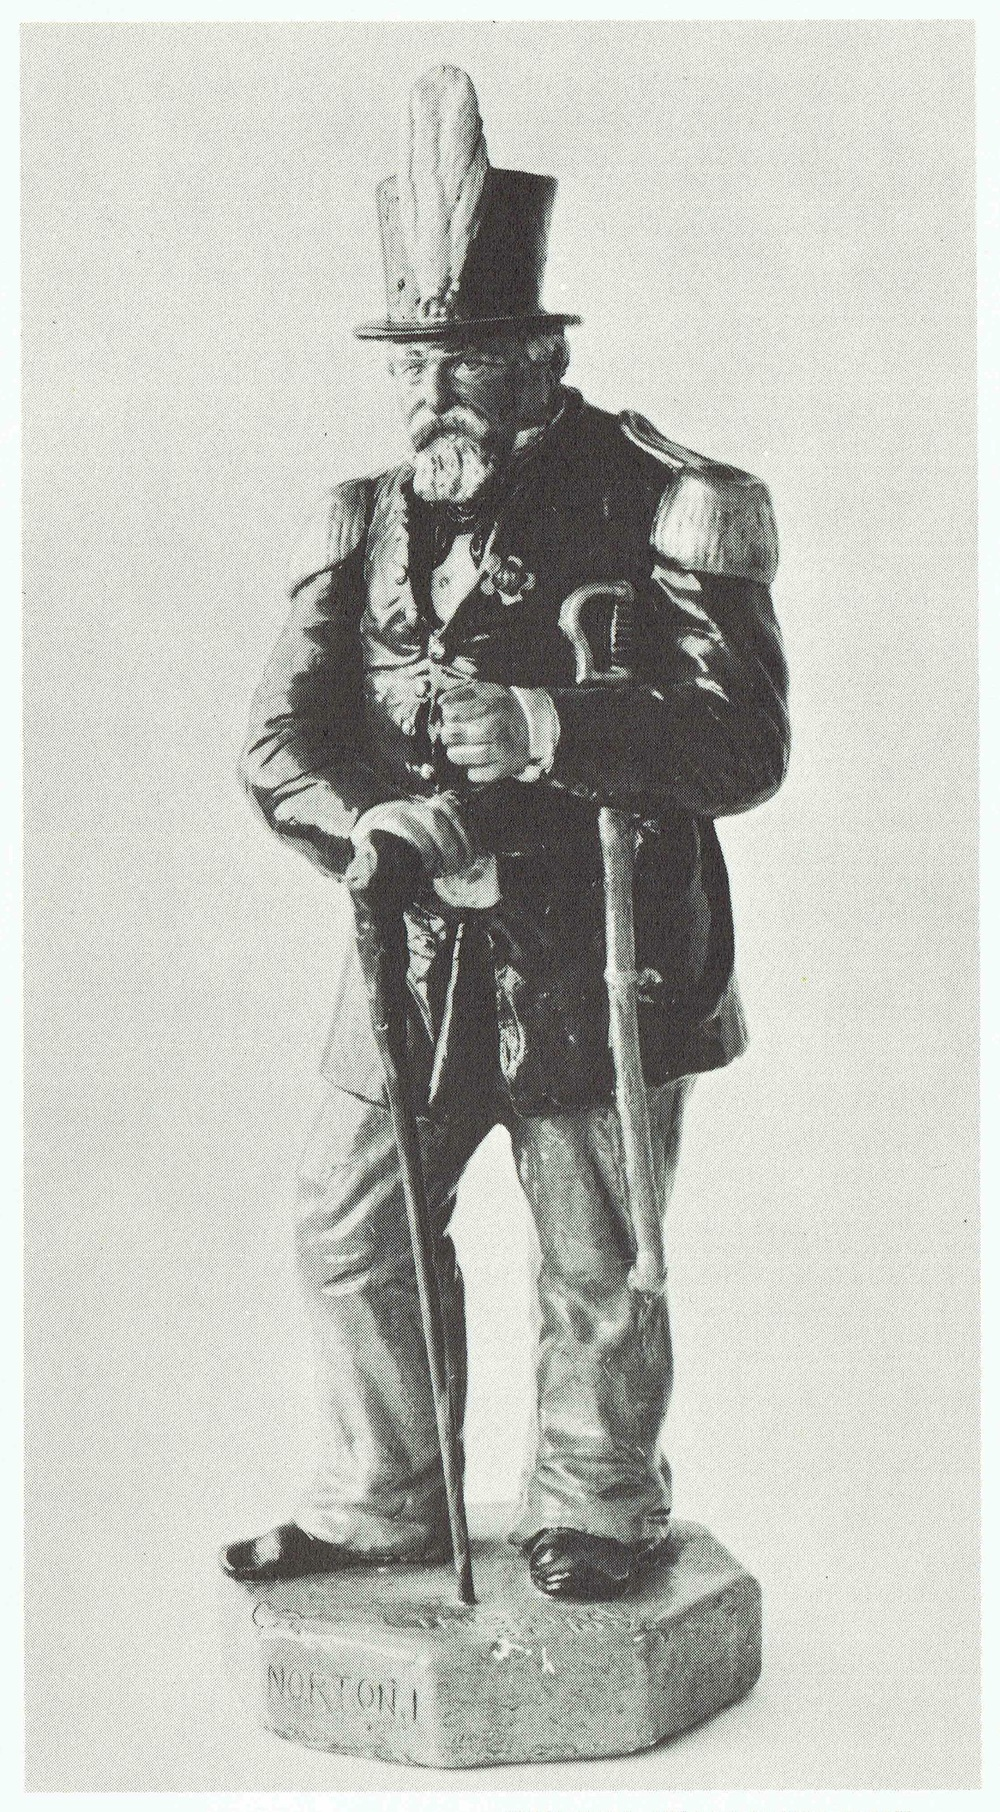 Emperor Norton figurine, plaster, c. 1875.  Collection of the Wells Fargo HIstory Museum, San Francisco. Source:  The Forgotten Characters of Old San Francisco  (The Ward Richie Press, 1964).